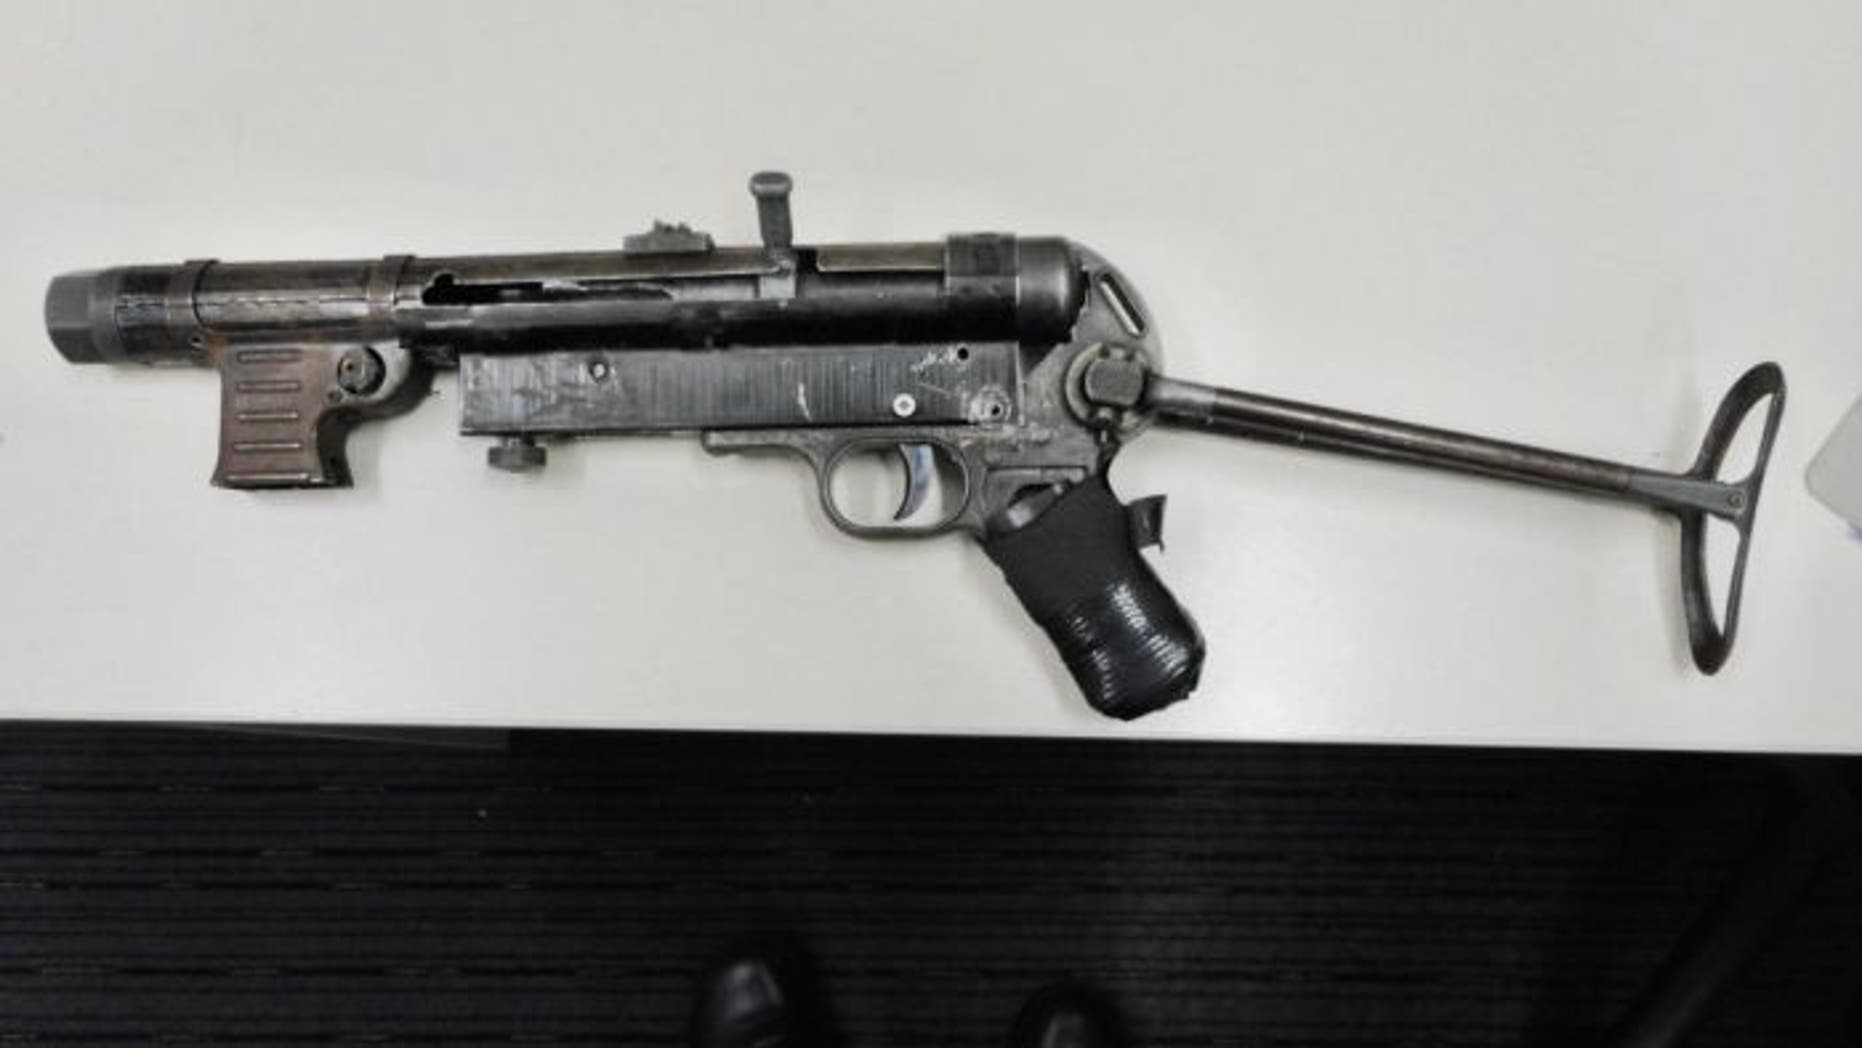 New South Wales police released a photo of the MP40 submachine gun